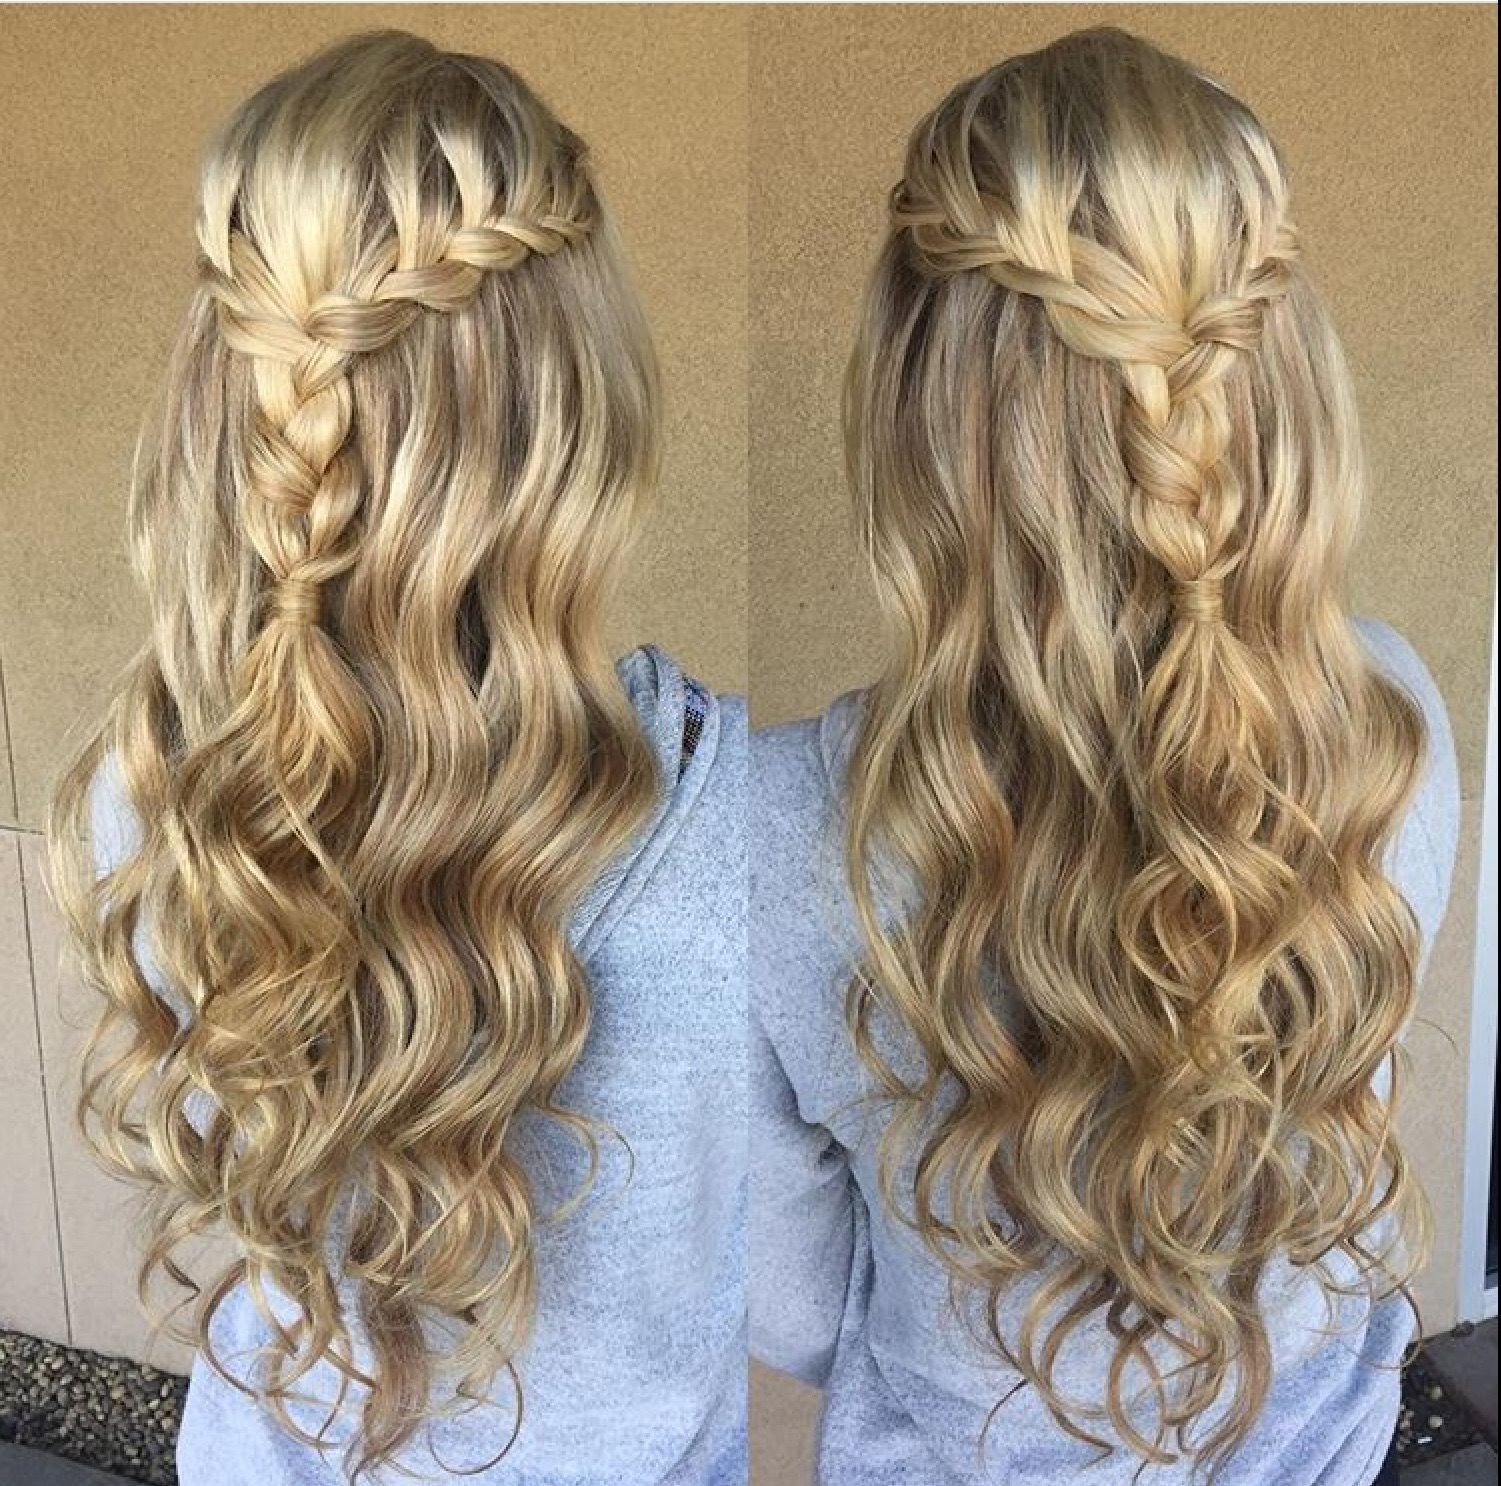 New Blonde Braid Prom Formal Hairstyle Half Up Long Hair Ideas With Pictures